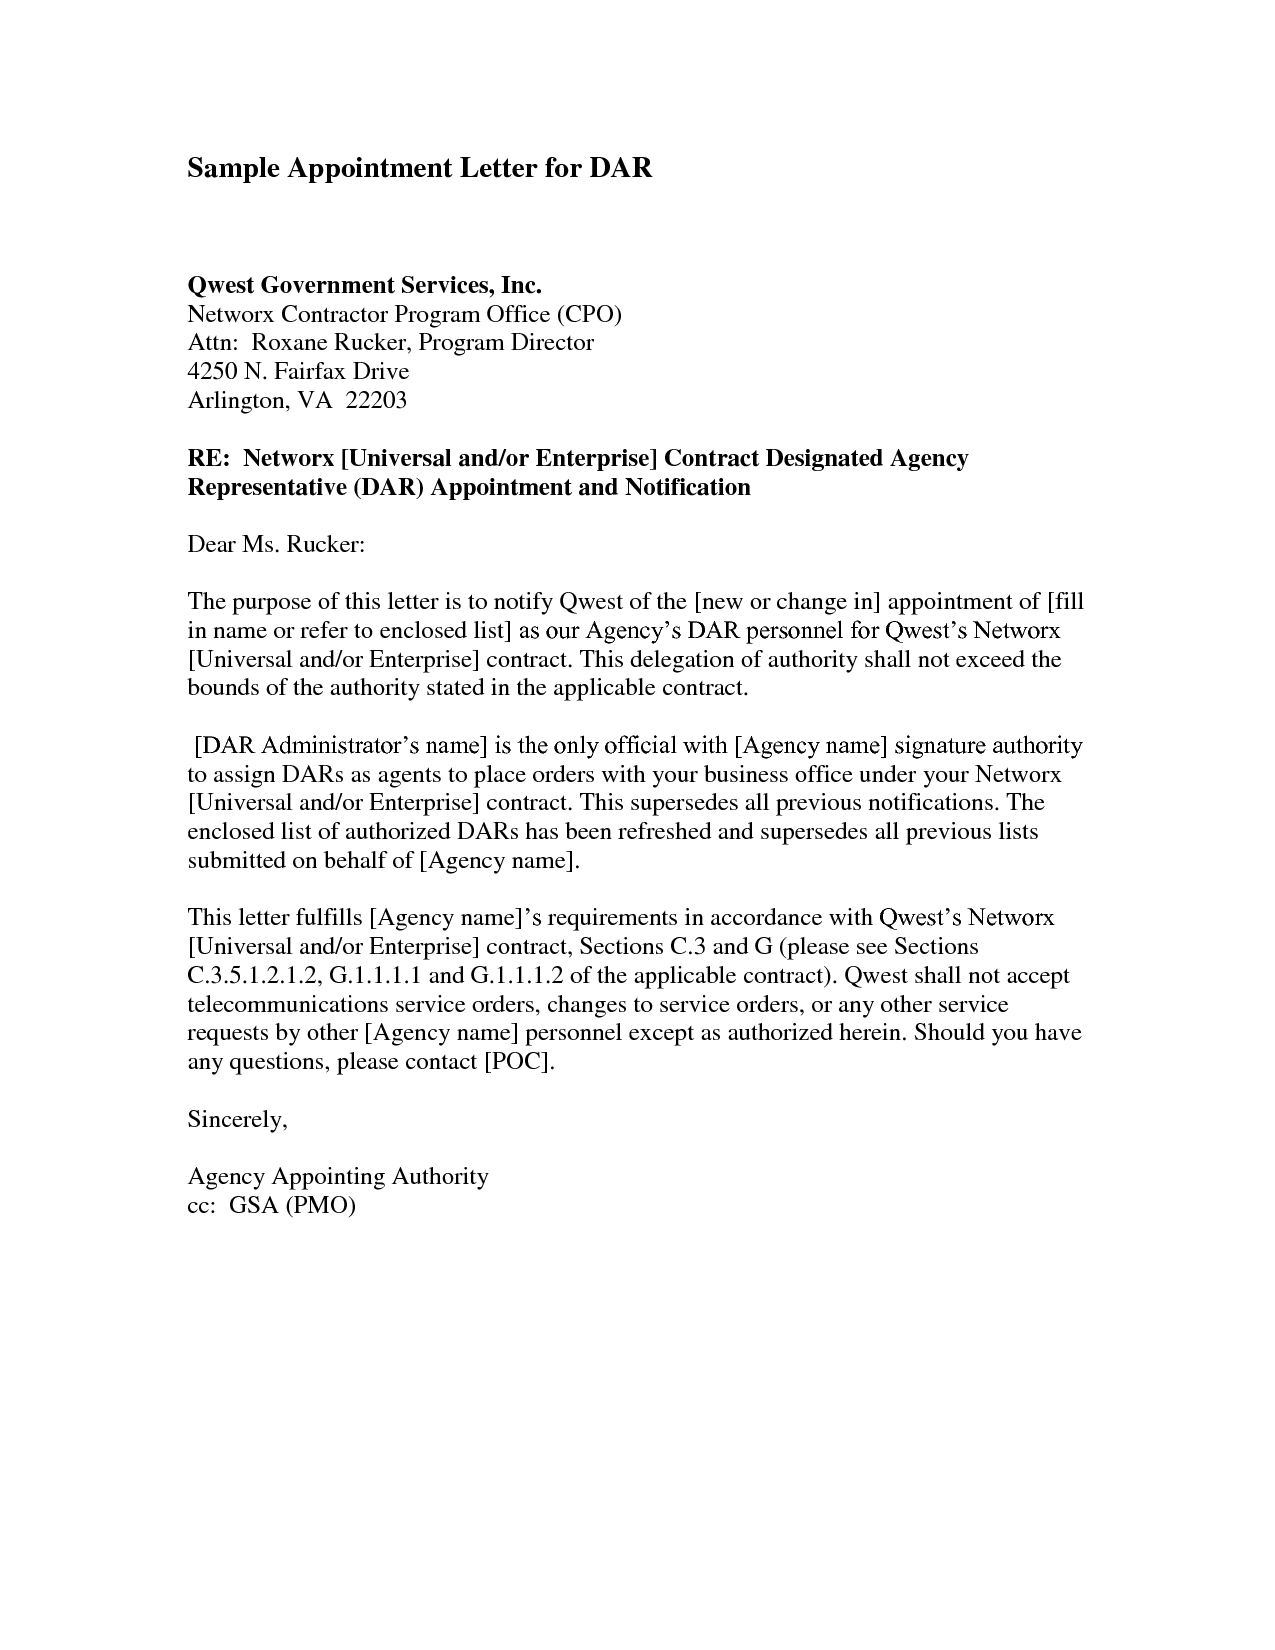 Donation Letter Template for Church - Trustee Appointment Letter Director Trustee is Appointed or